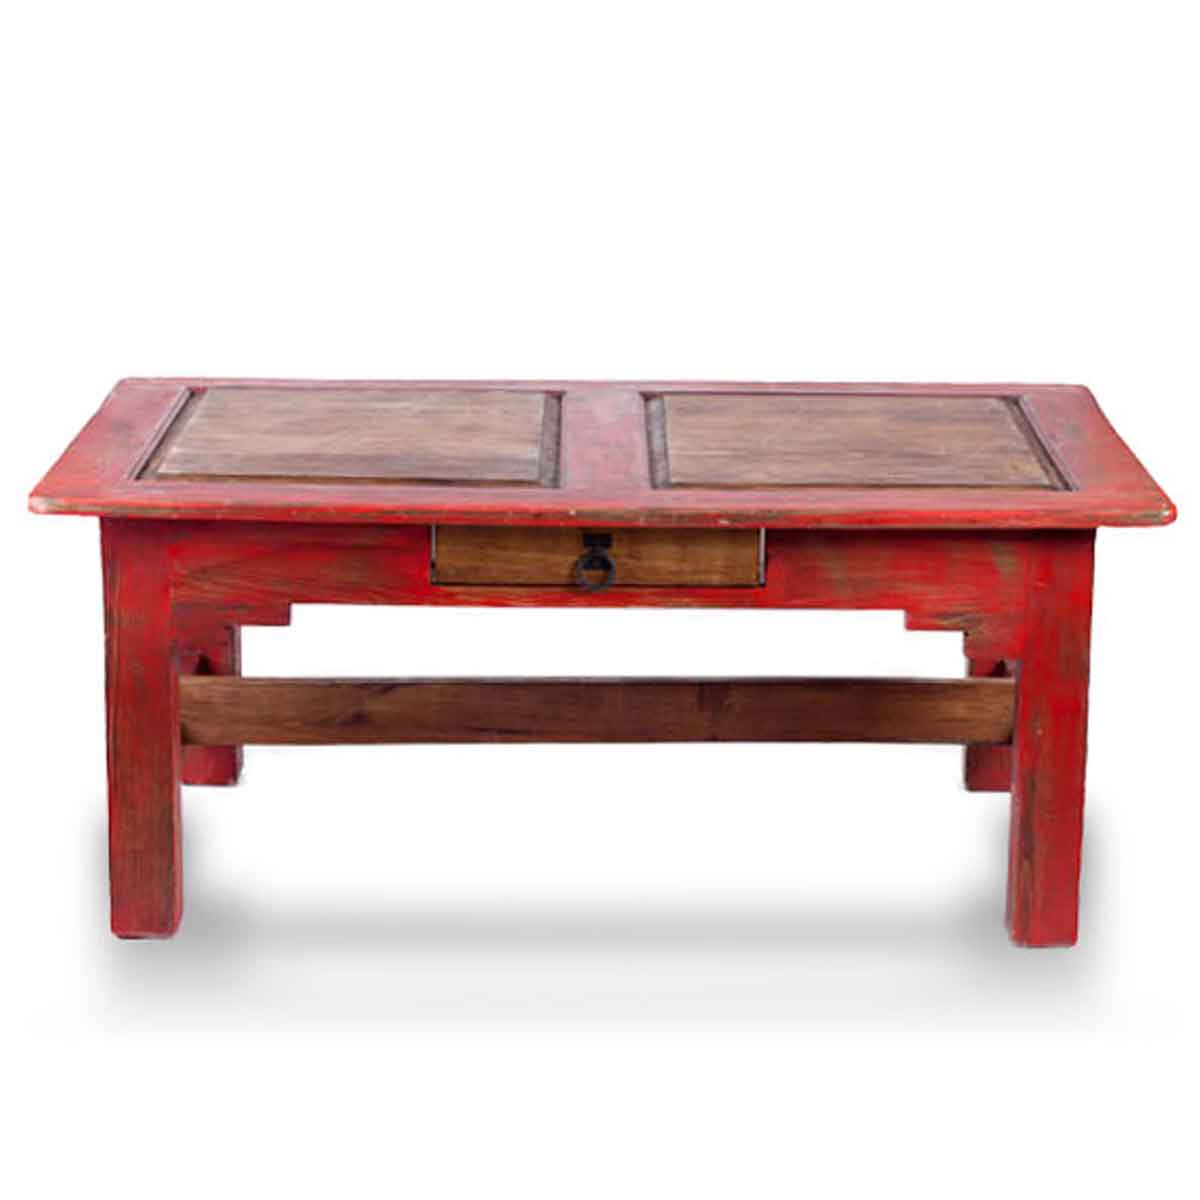 Buy Acuna Rustic Coffee Table Online Made From Kiln